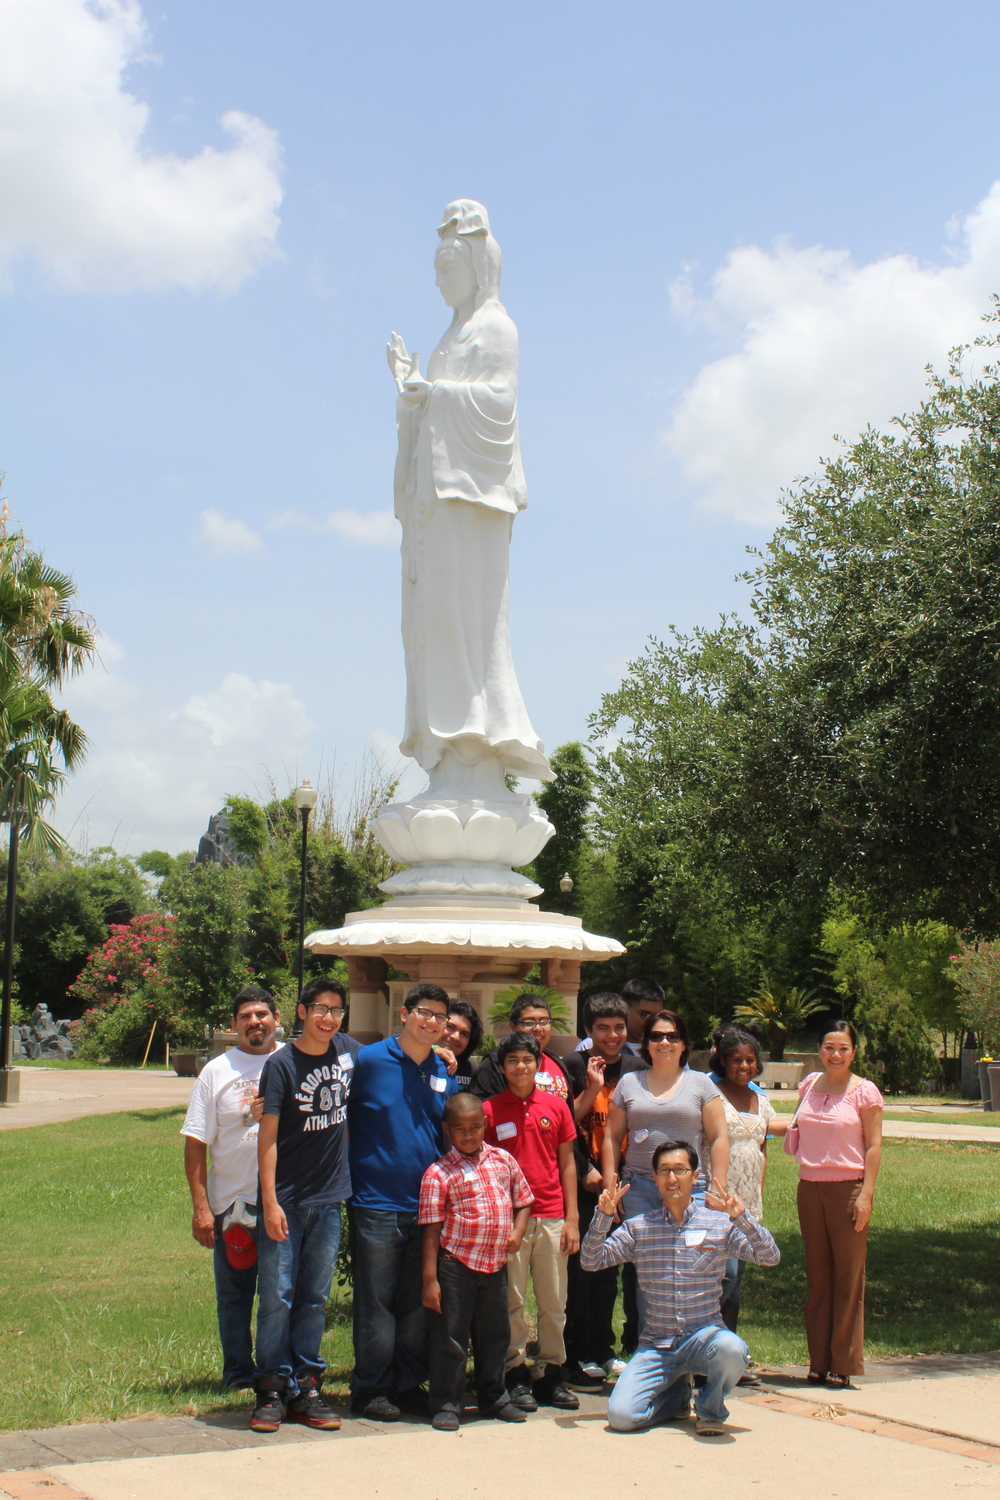 In front of the 72 foot statue at the Buddhist Temple.